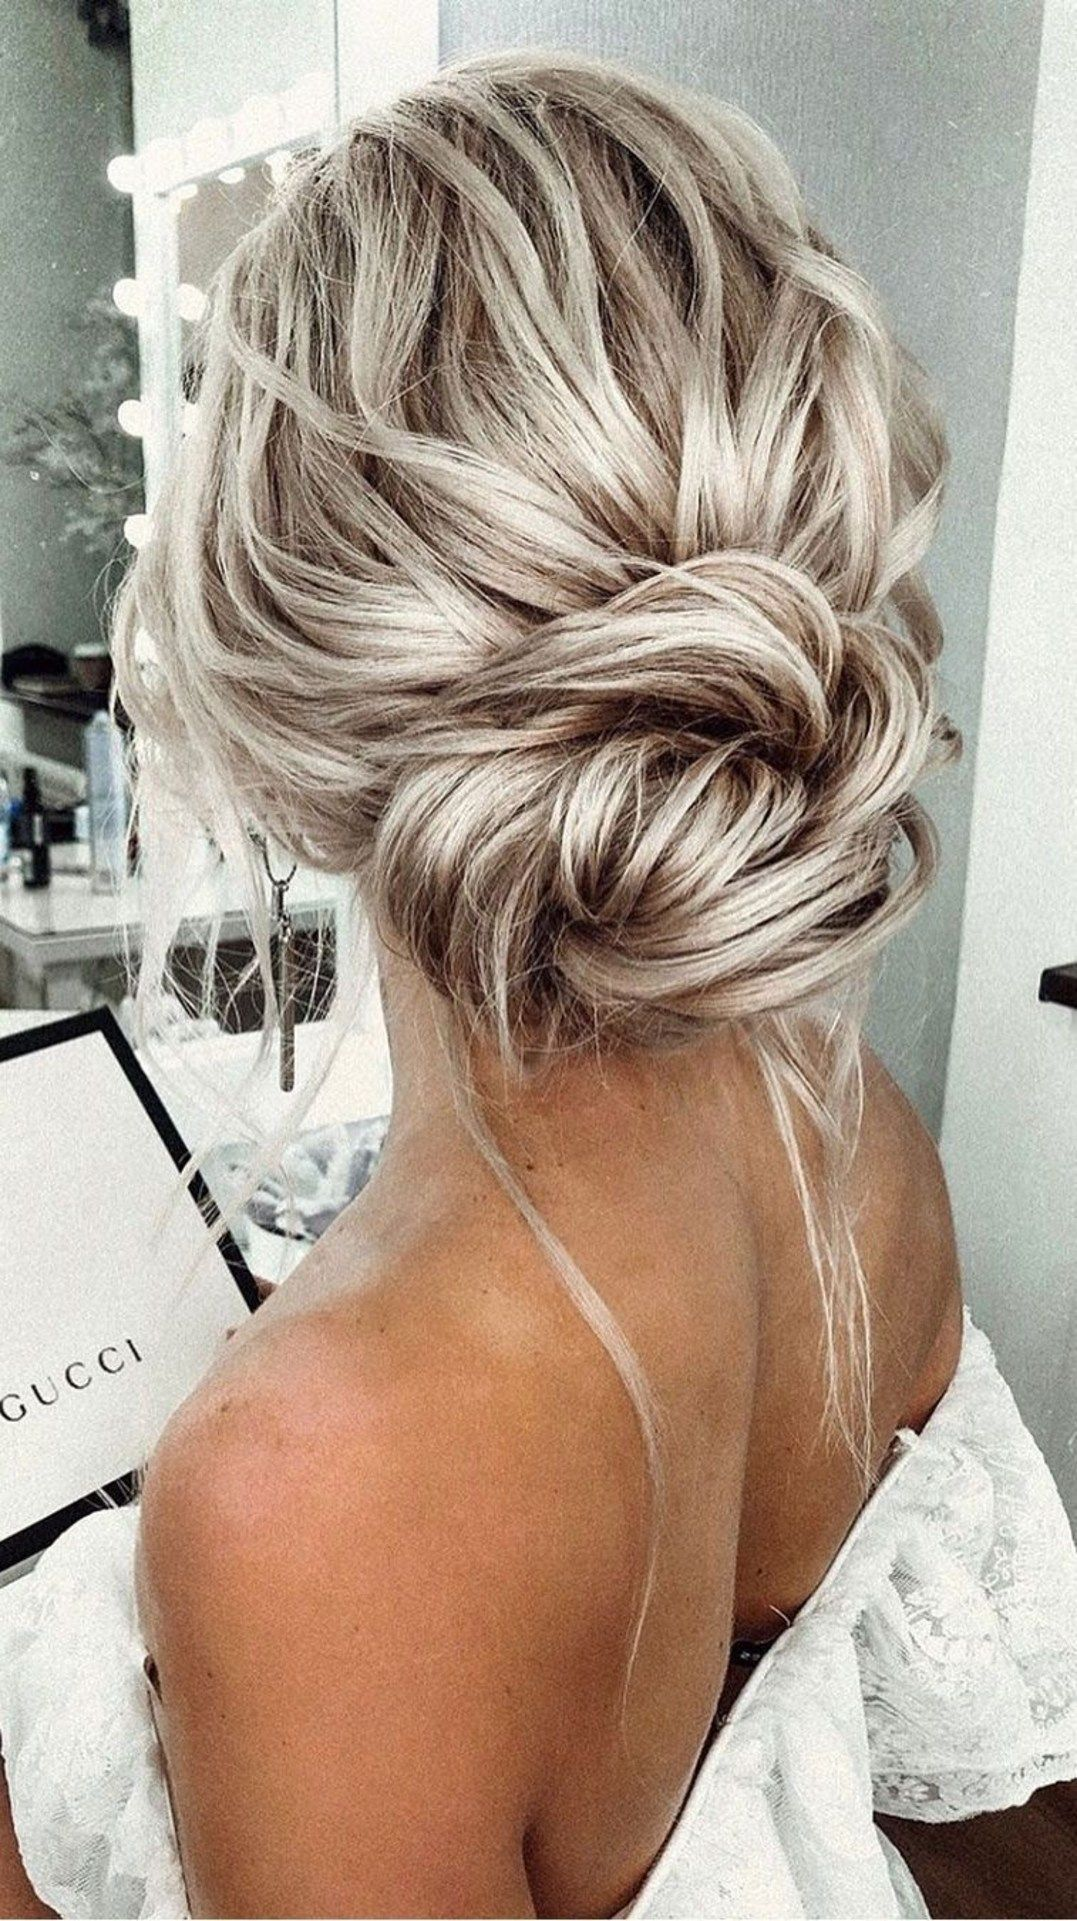 17 Best Nurse Hairstyles Updo Hairdos To Refresh Your Look The 8 Best Hairstyles For Nursing Clinicals Nurse In 2020 Nurse Hairstyles Hair Styles Messy Hairstyles